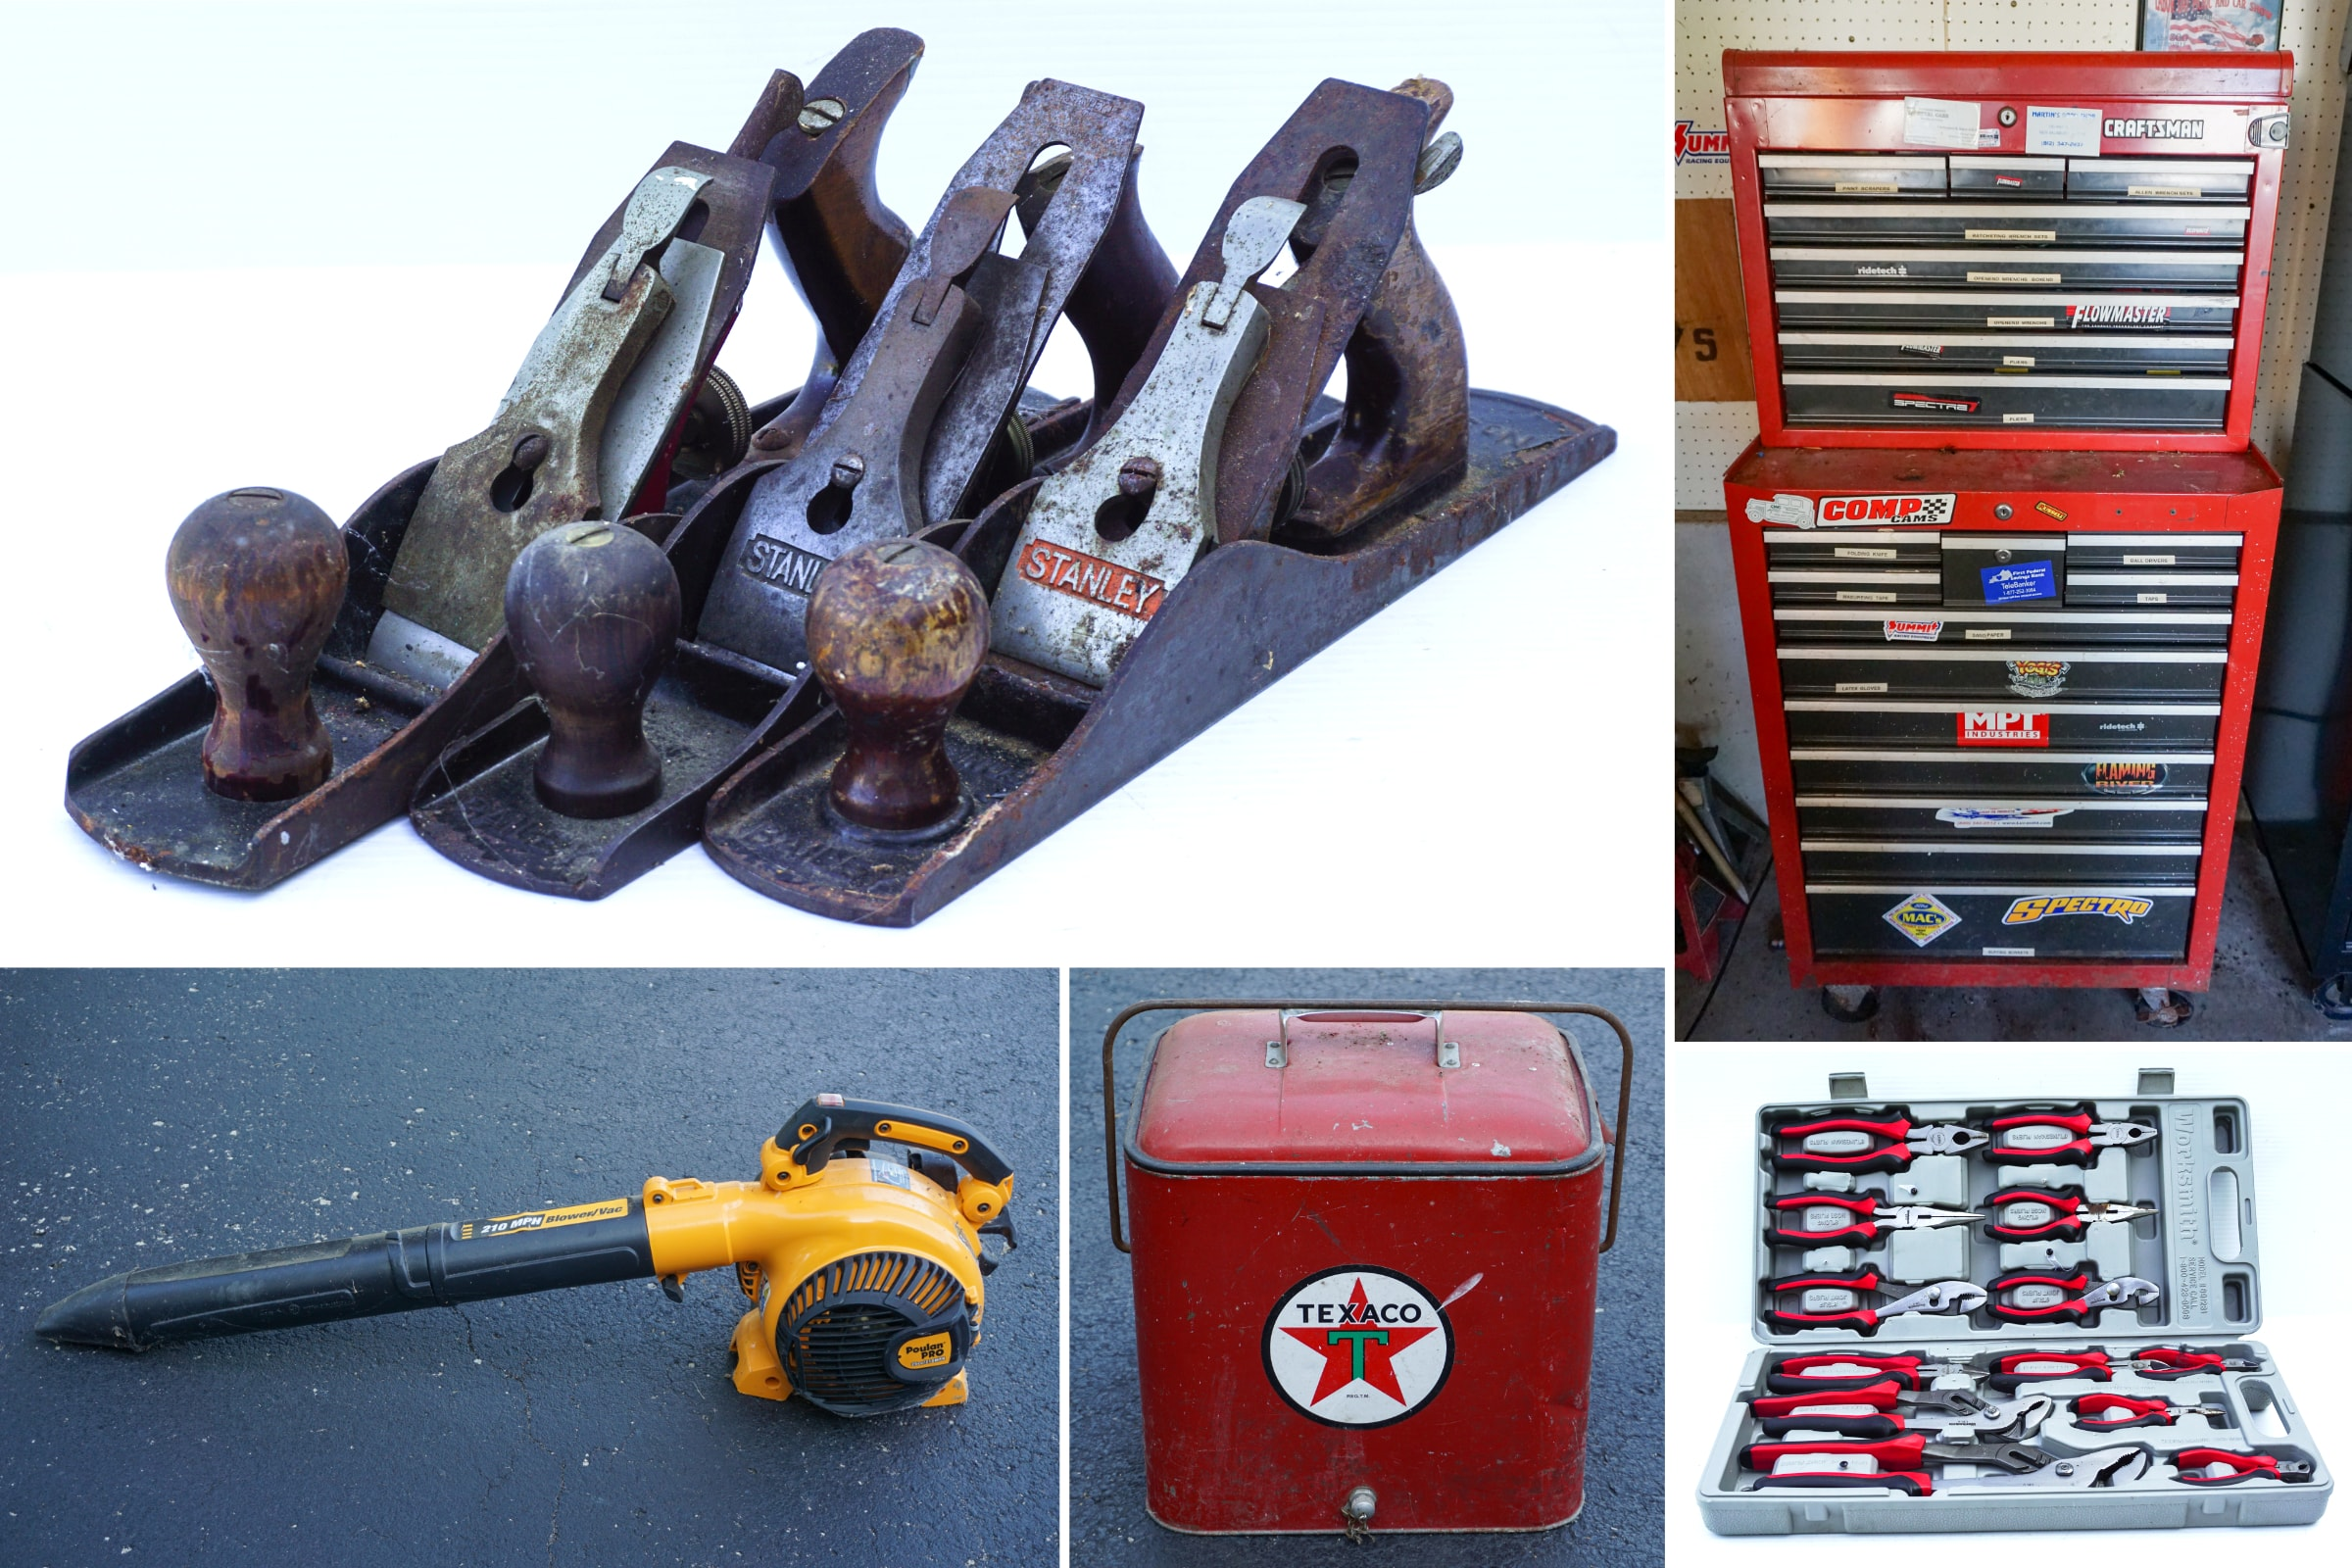 Woodworking Tools & Equipment Auction